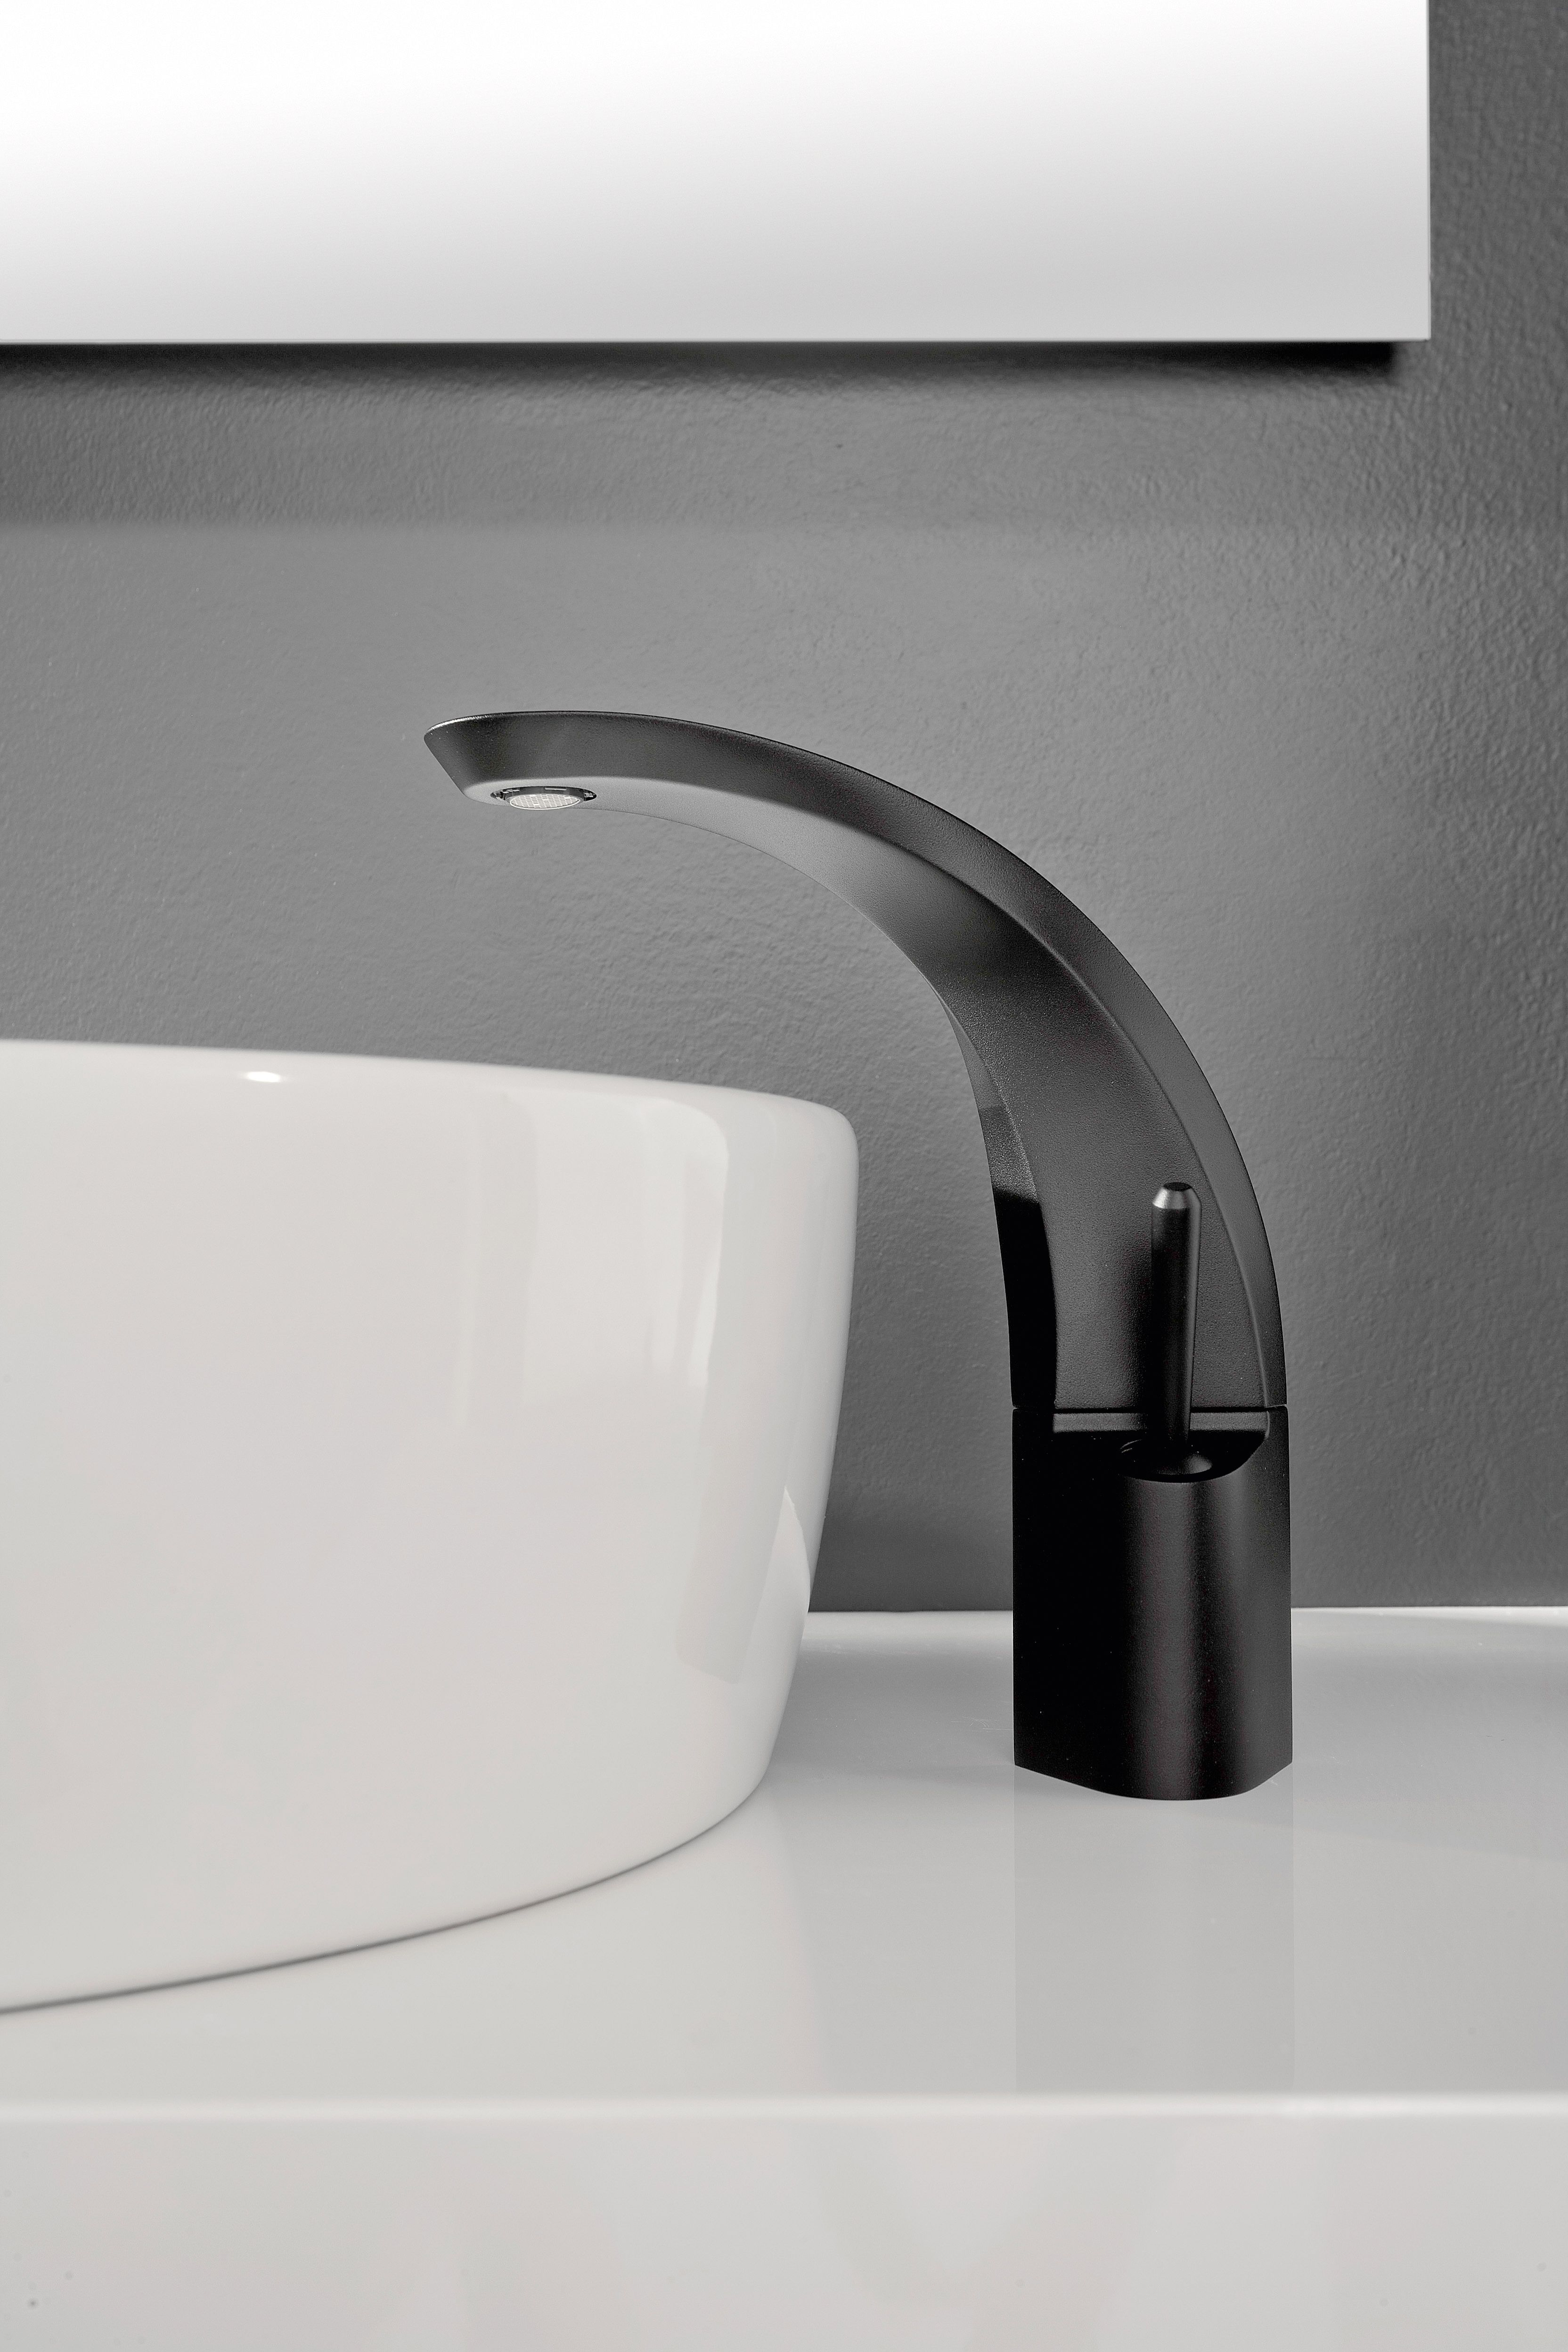 Bold and daring, the Ametis vessel lavatory faucet, designed by ...